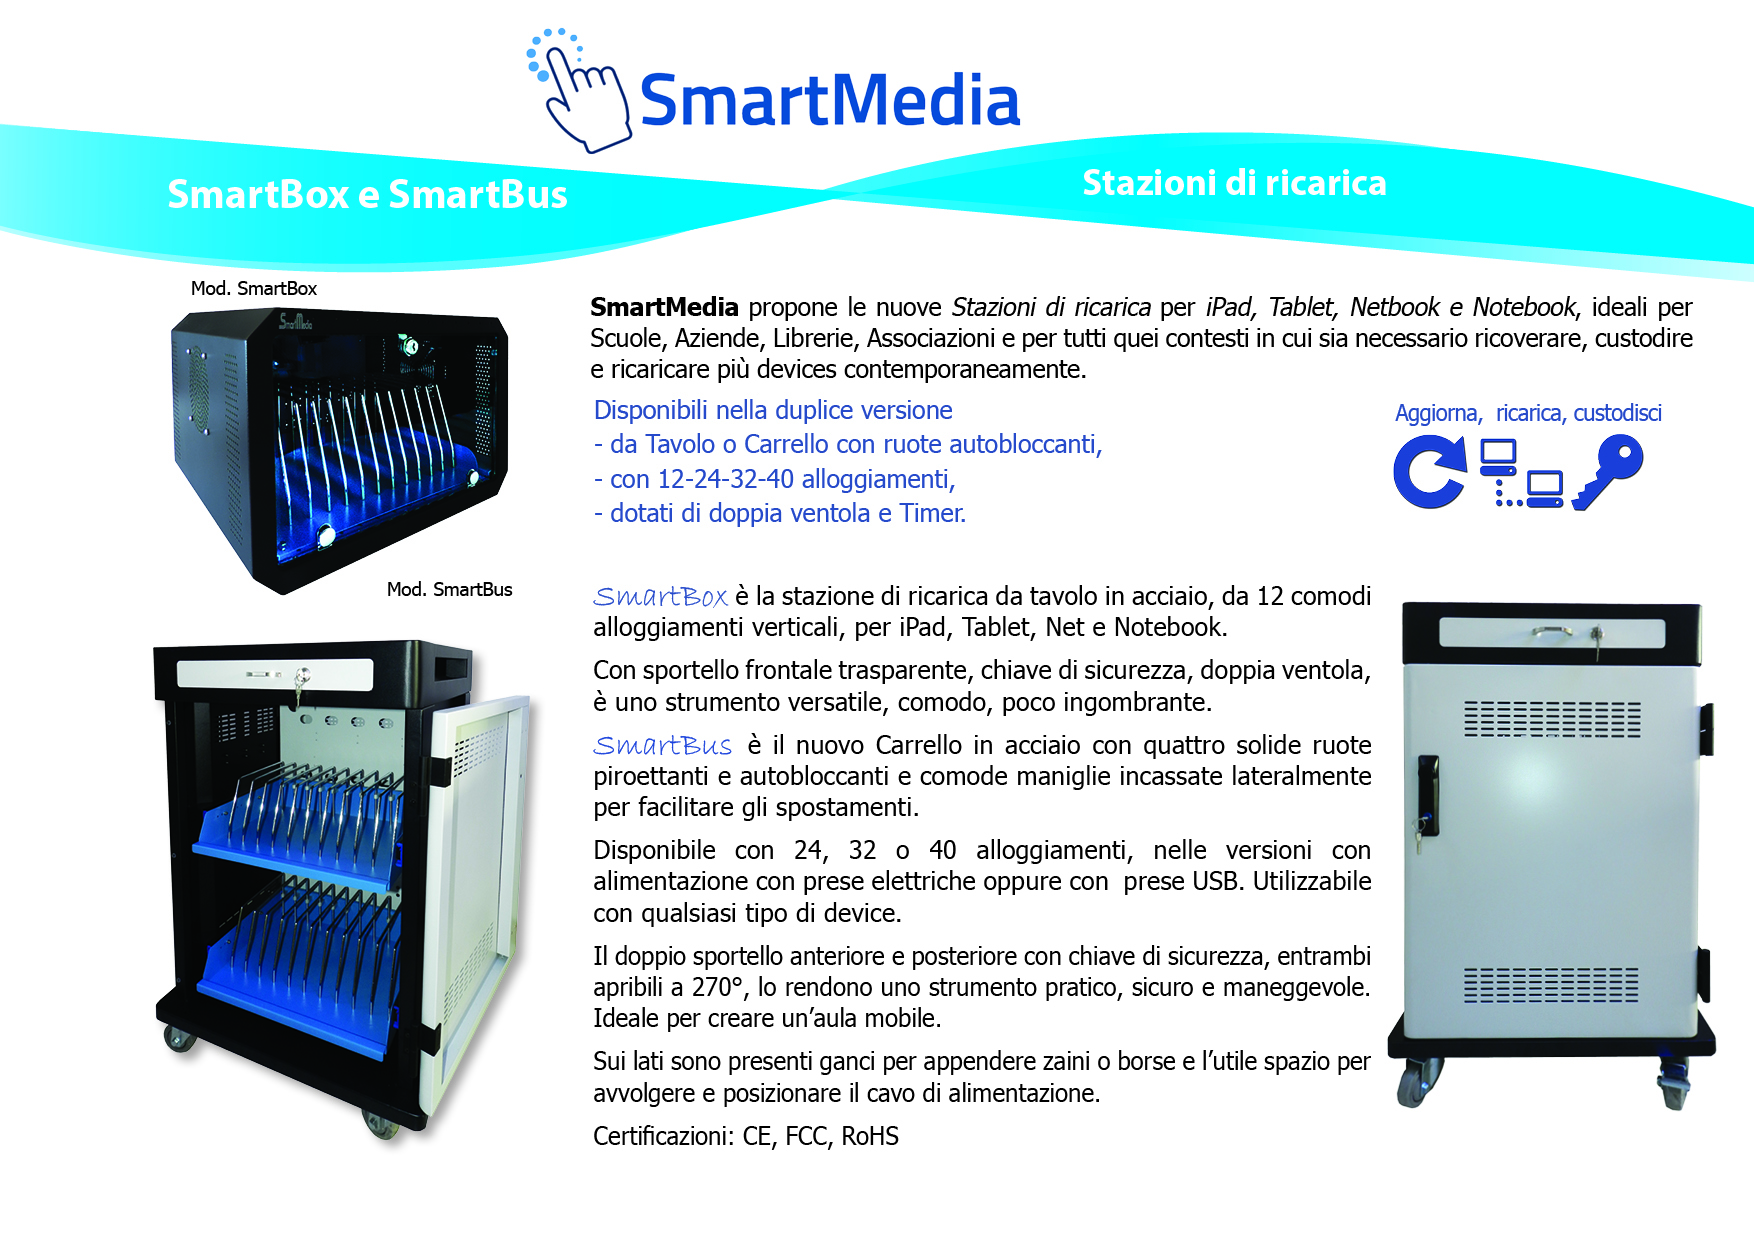 SmartBus - Stazioni di ricarica intelligenti per Notebook, iPad , Netbook